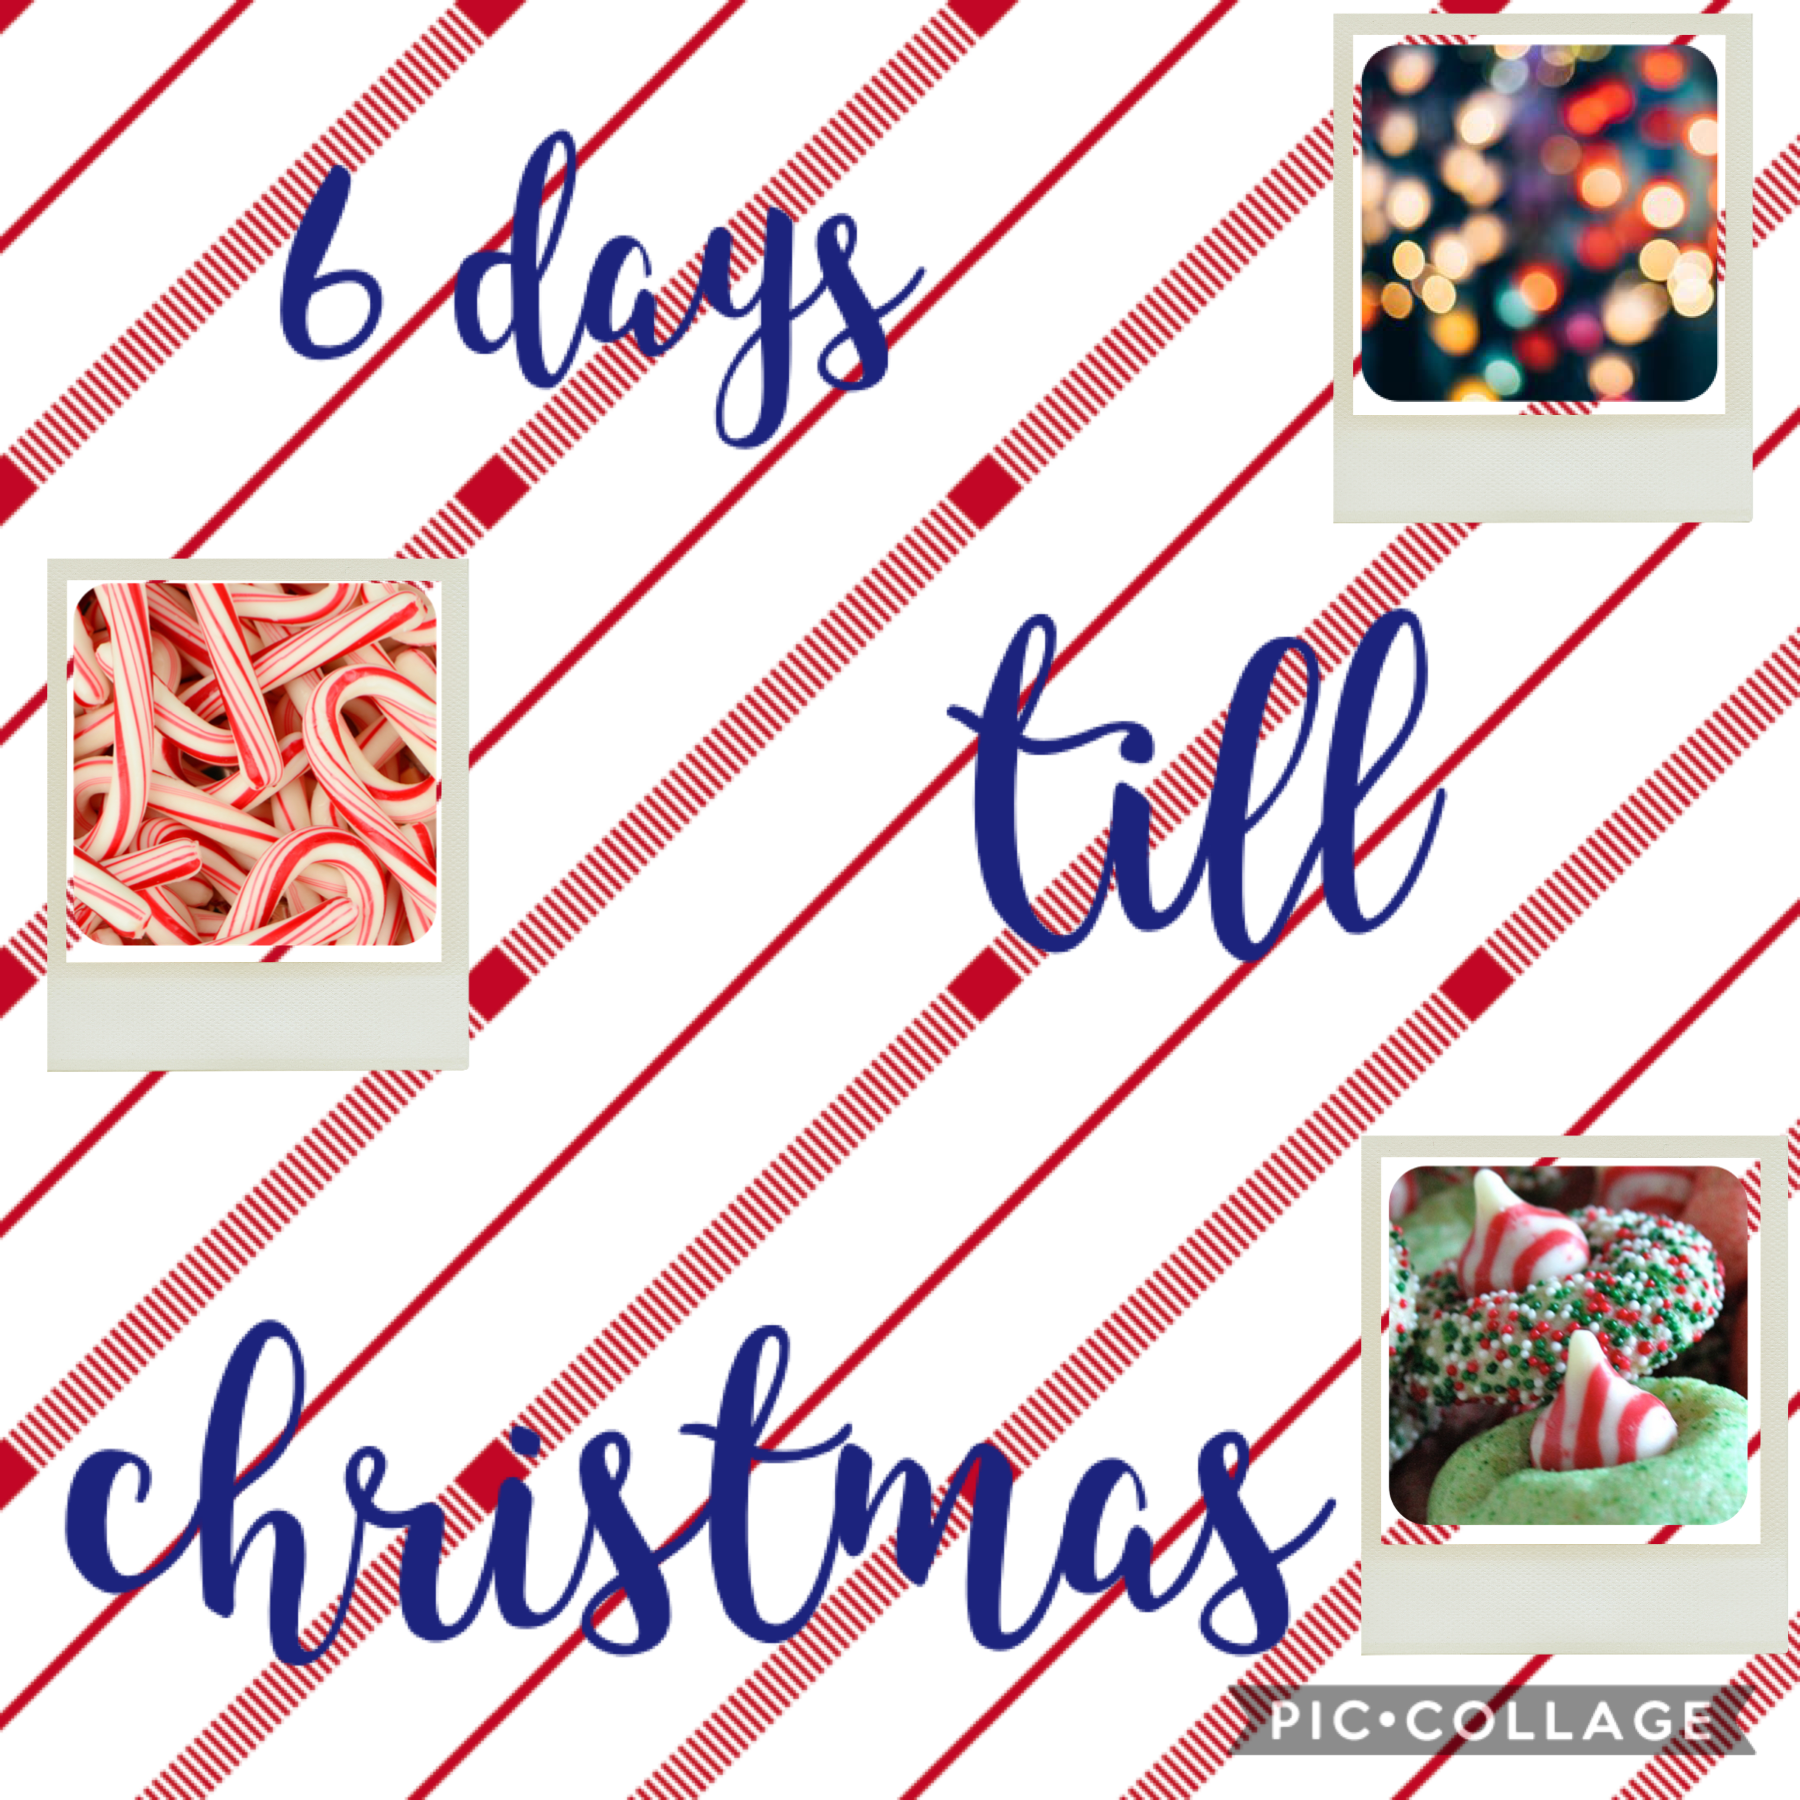 6 days till christmas i am so excited!!!